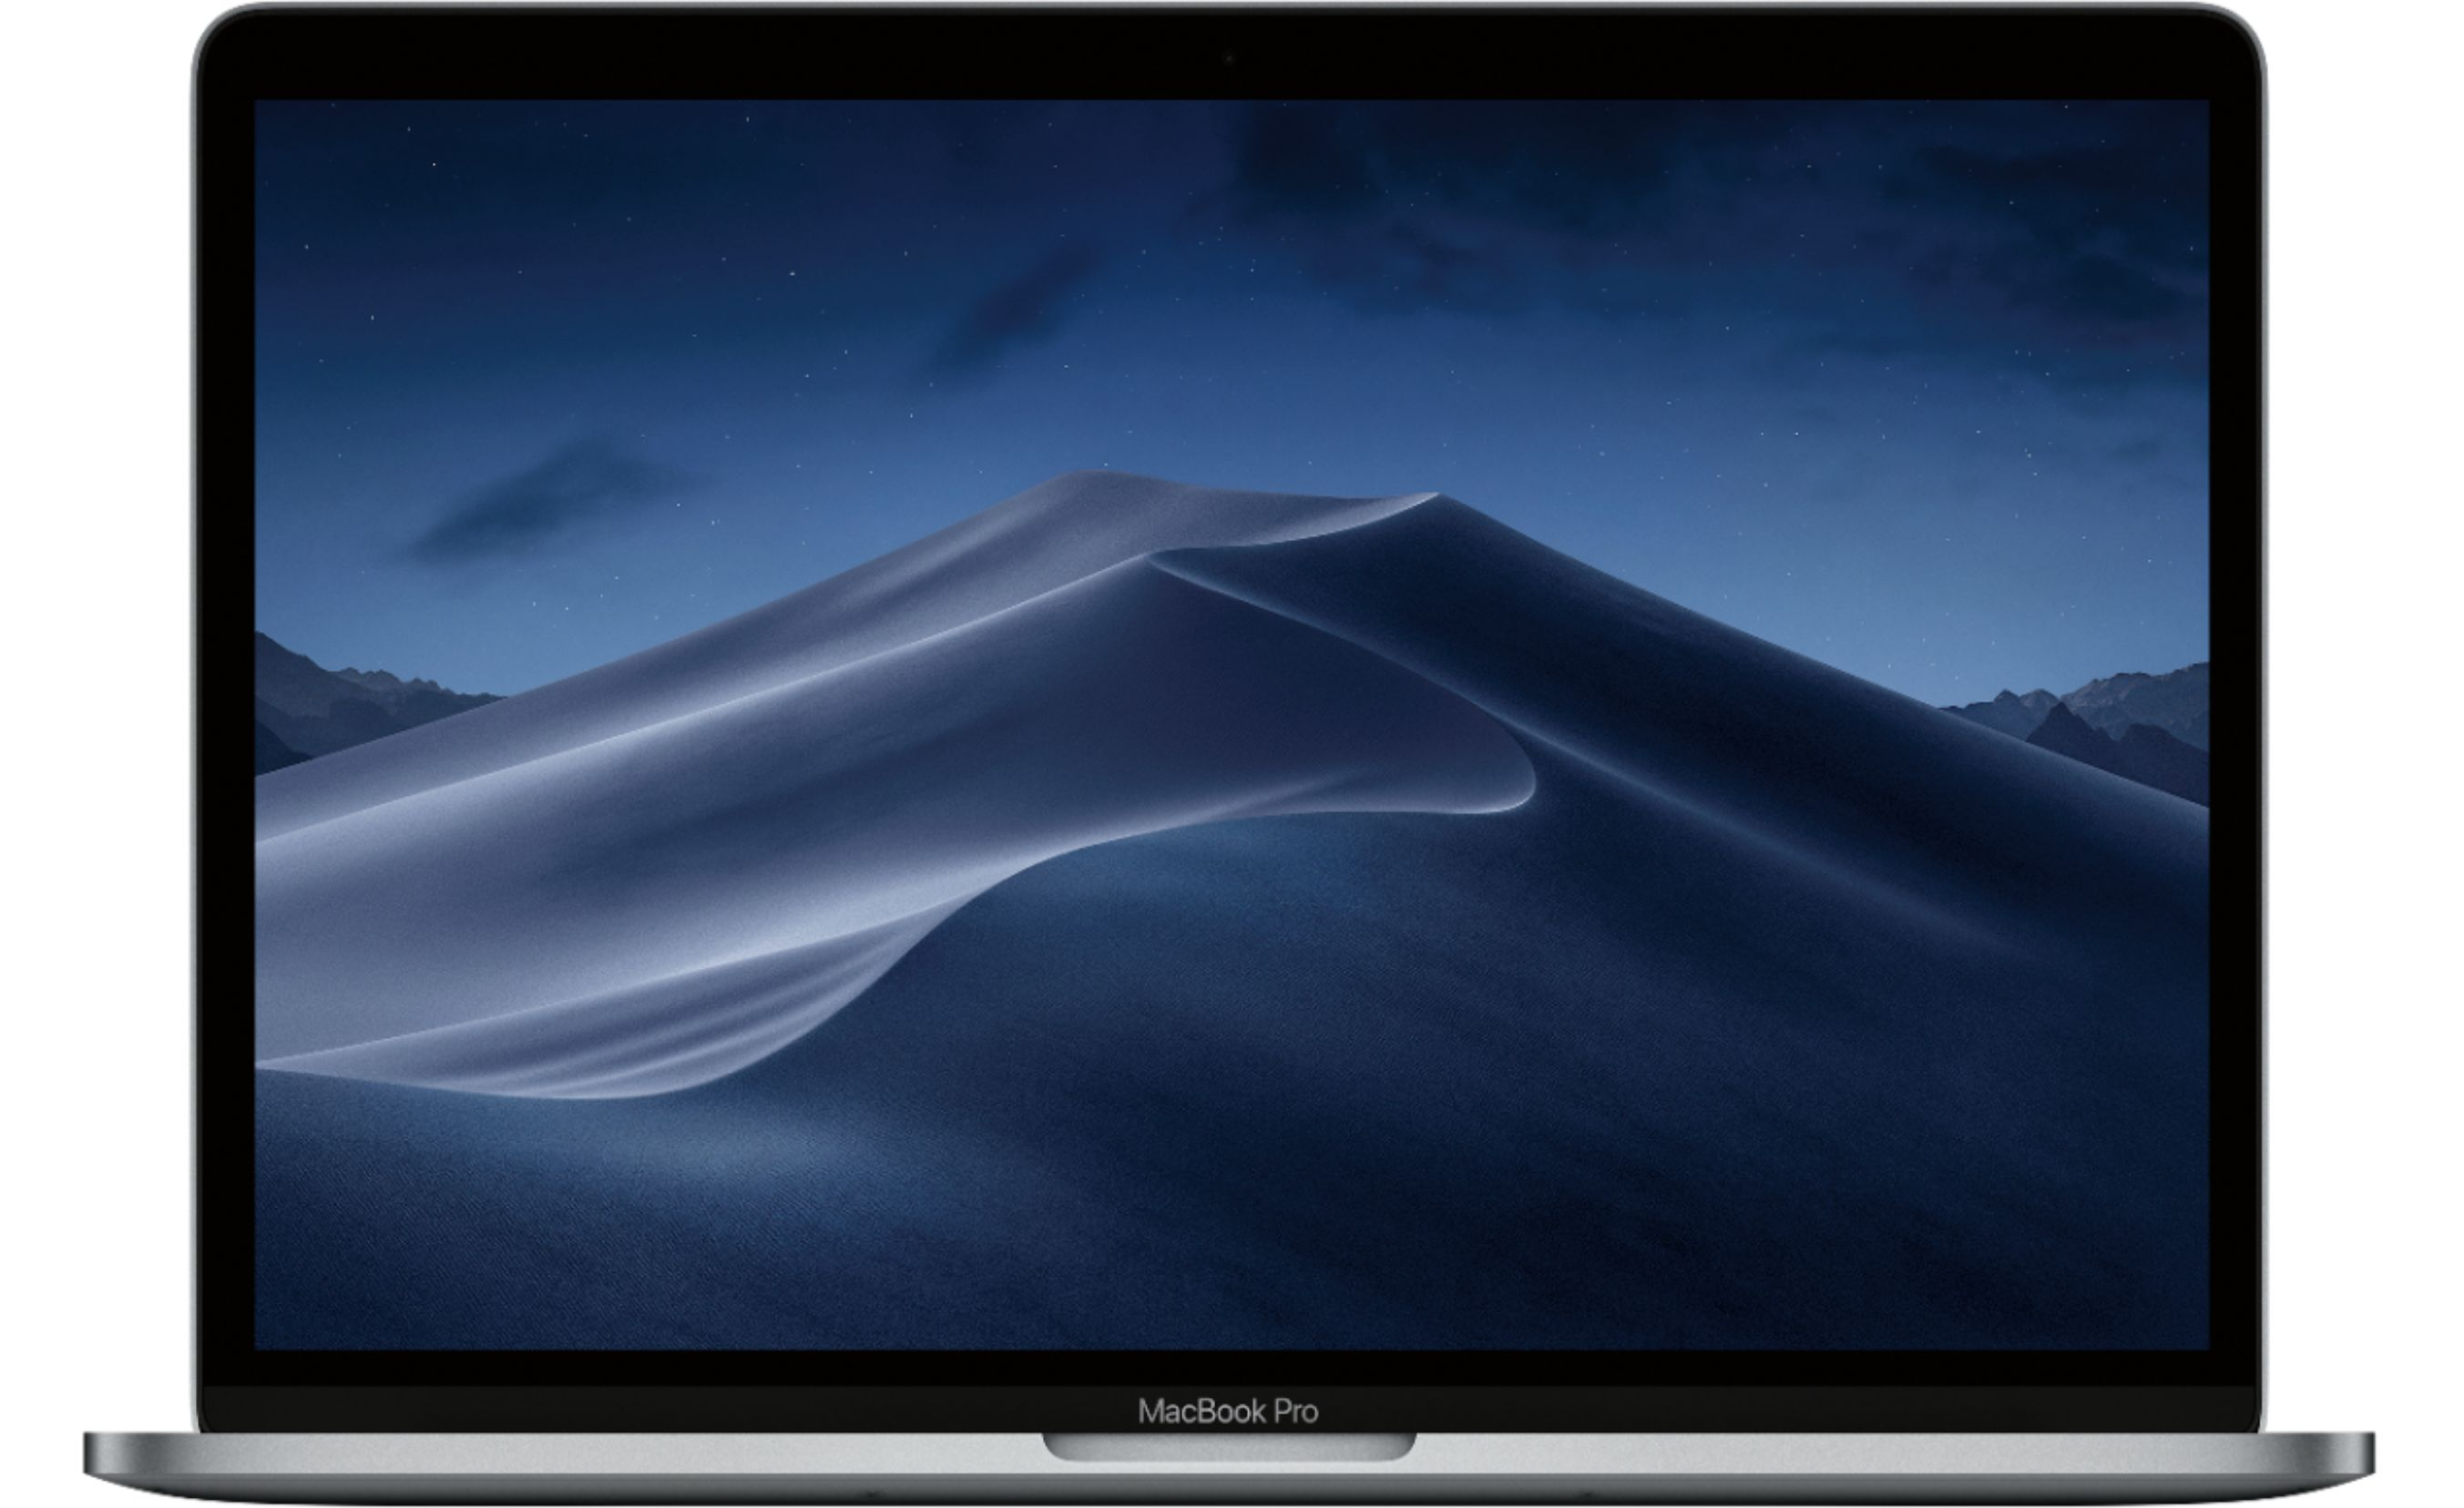 "Front Zoom. Apple - MacBook Pro - 13"" Display with Touch Bar - Intel Core i5 - 16GB Memory - 512GB SSD - Space Gray."